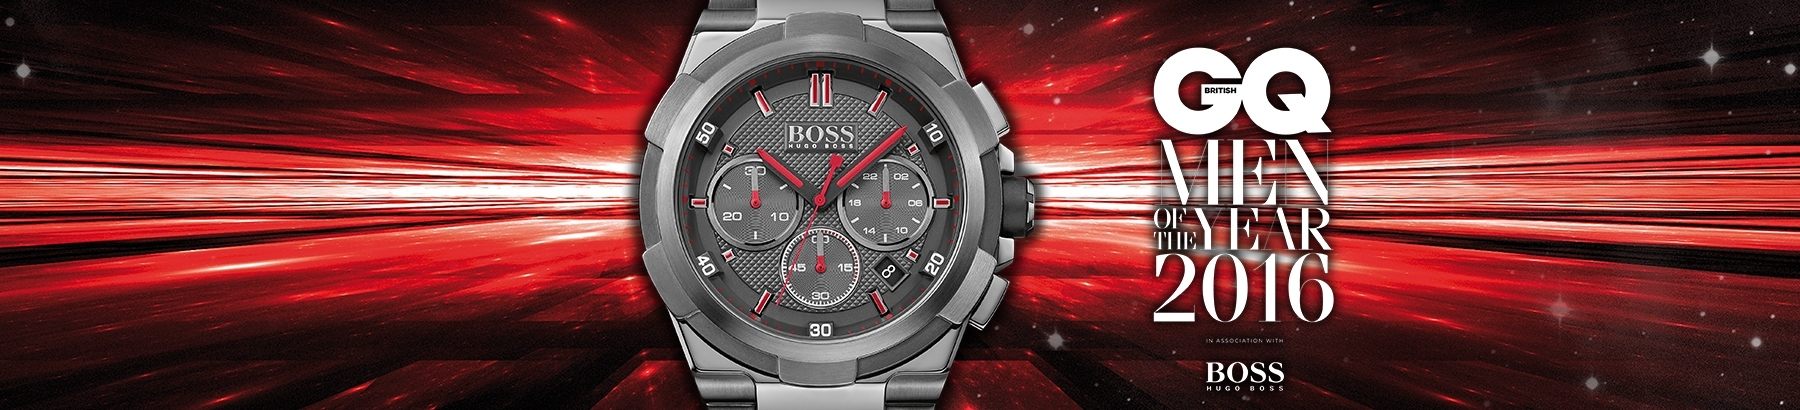 Shop Boss Watches